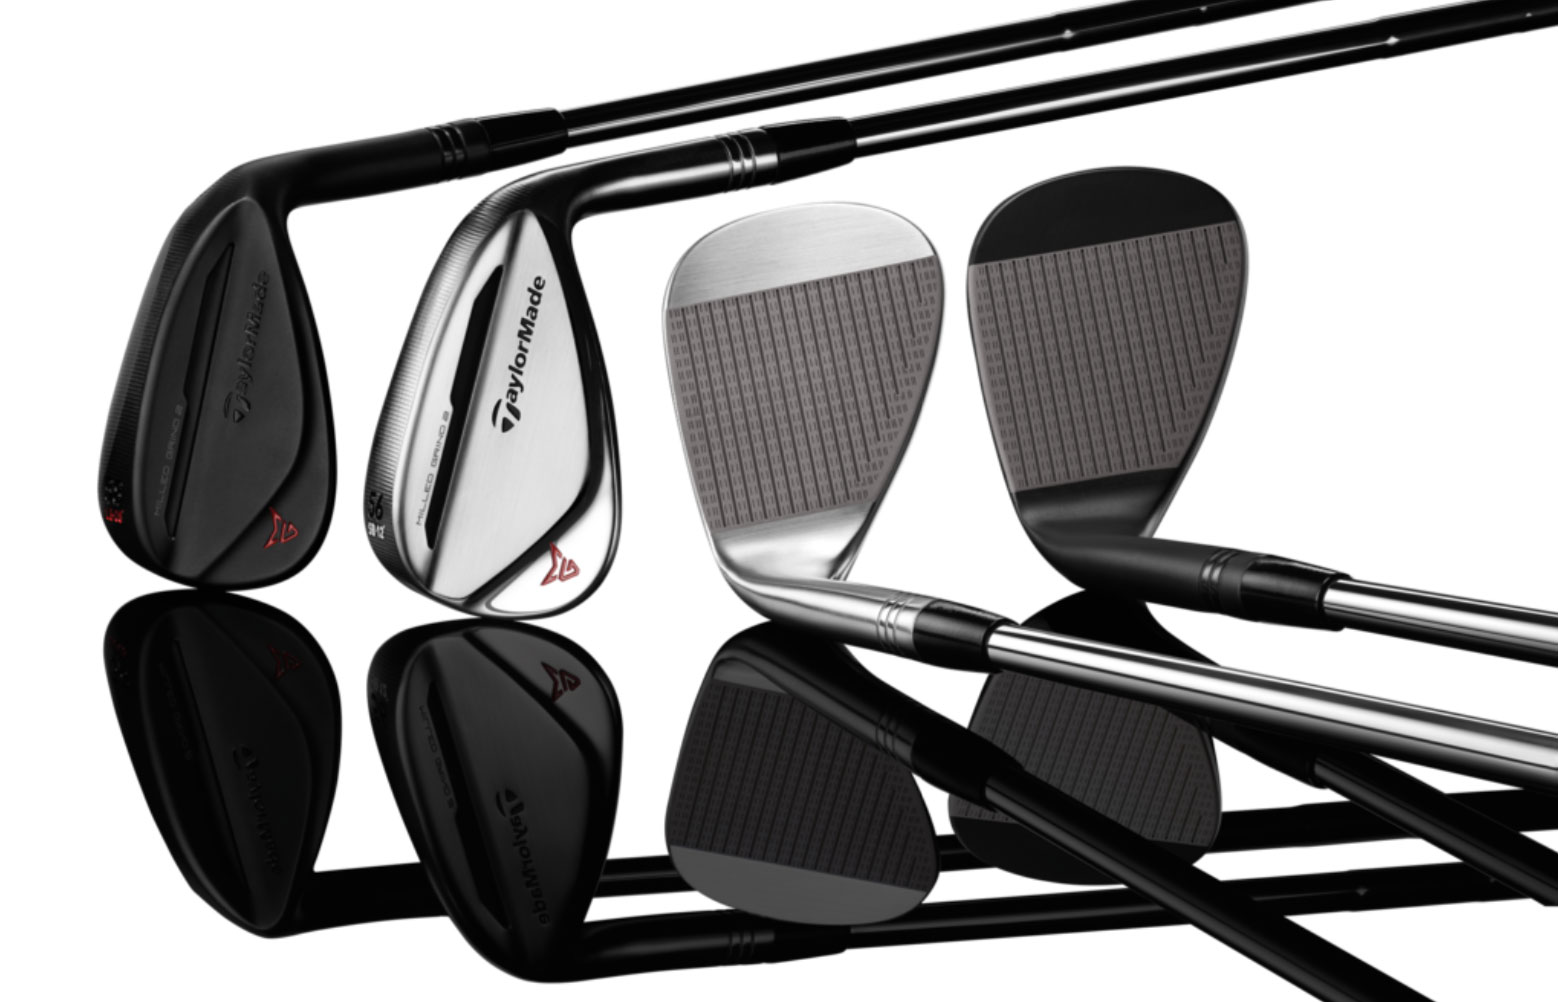 taylormade-milled-grind-2-wedges-mr.jpg